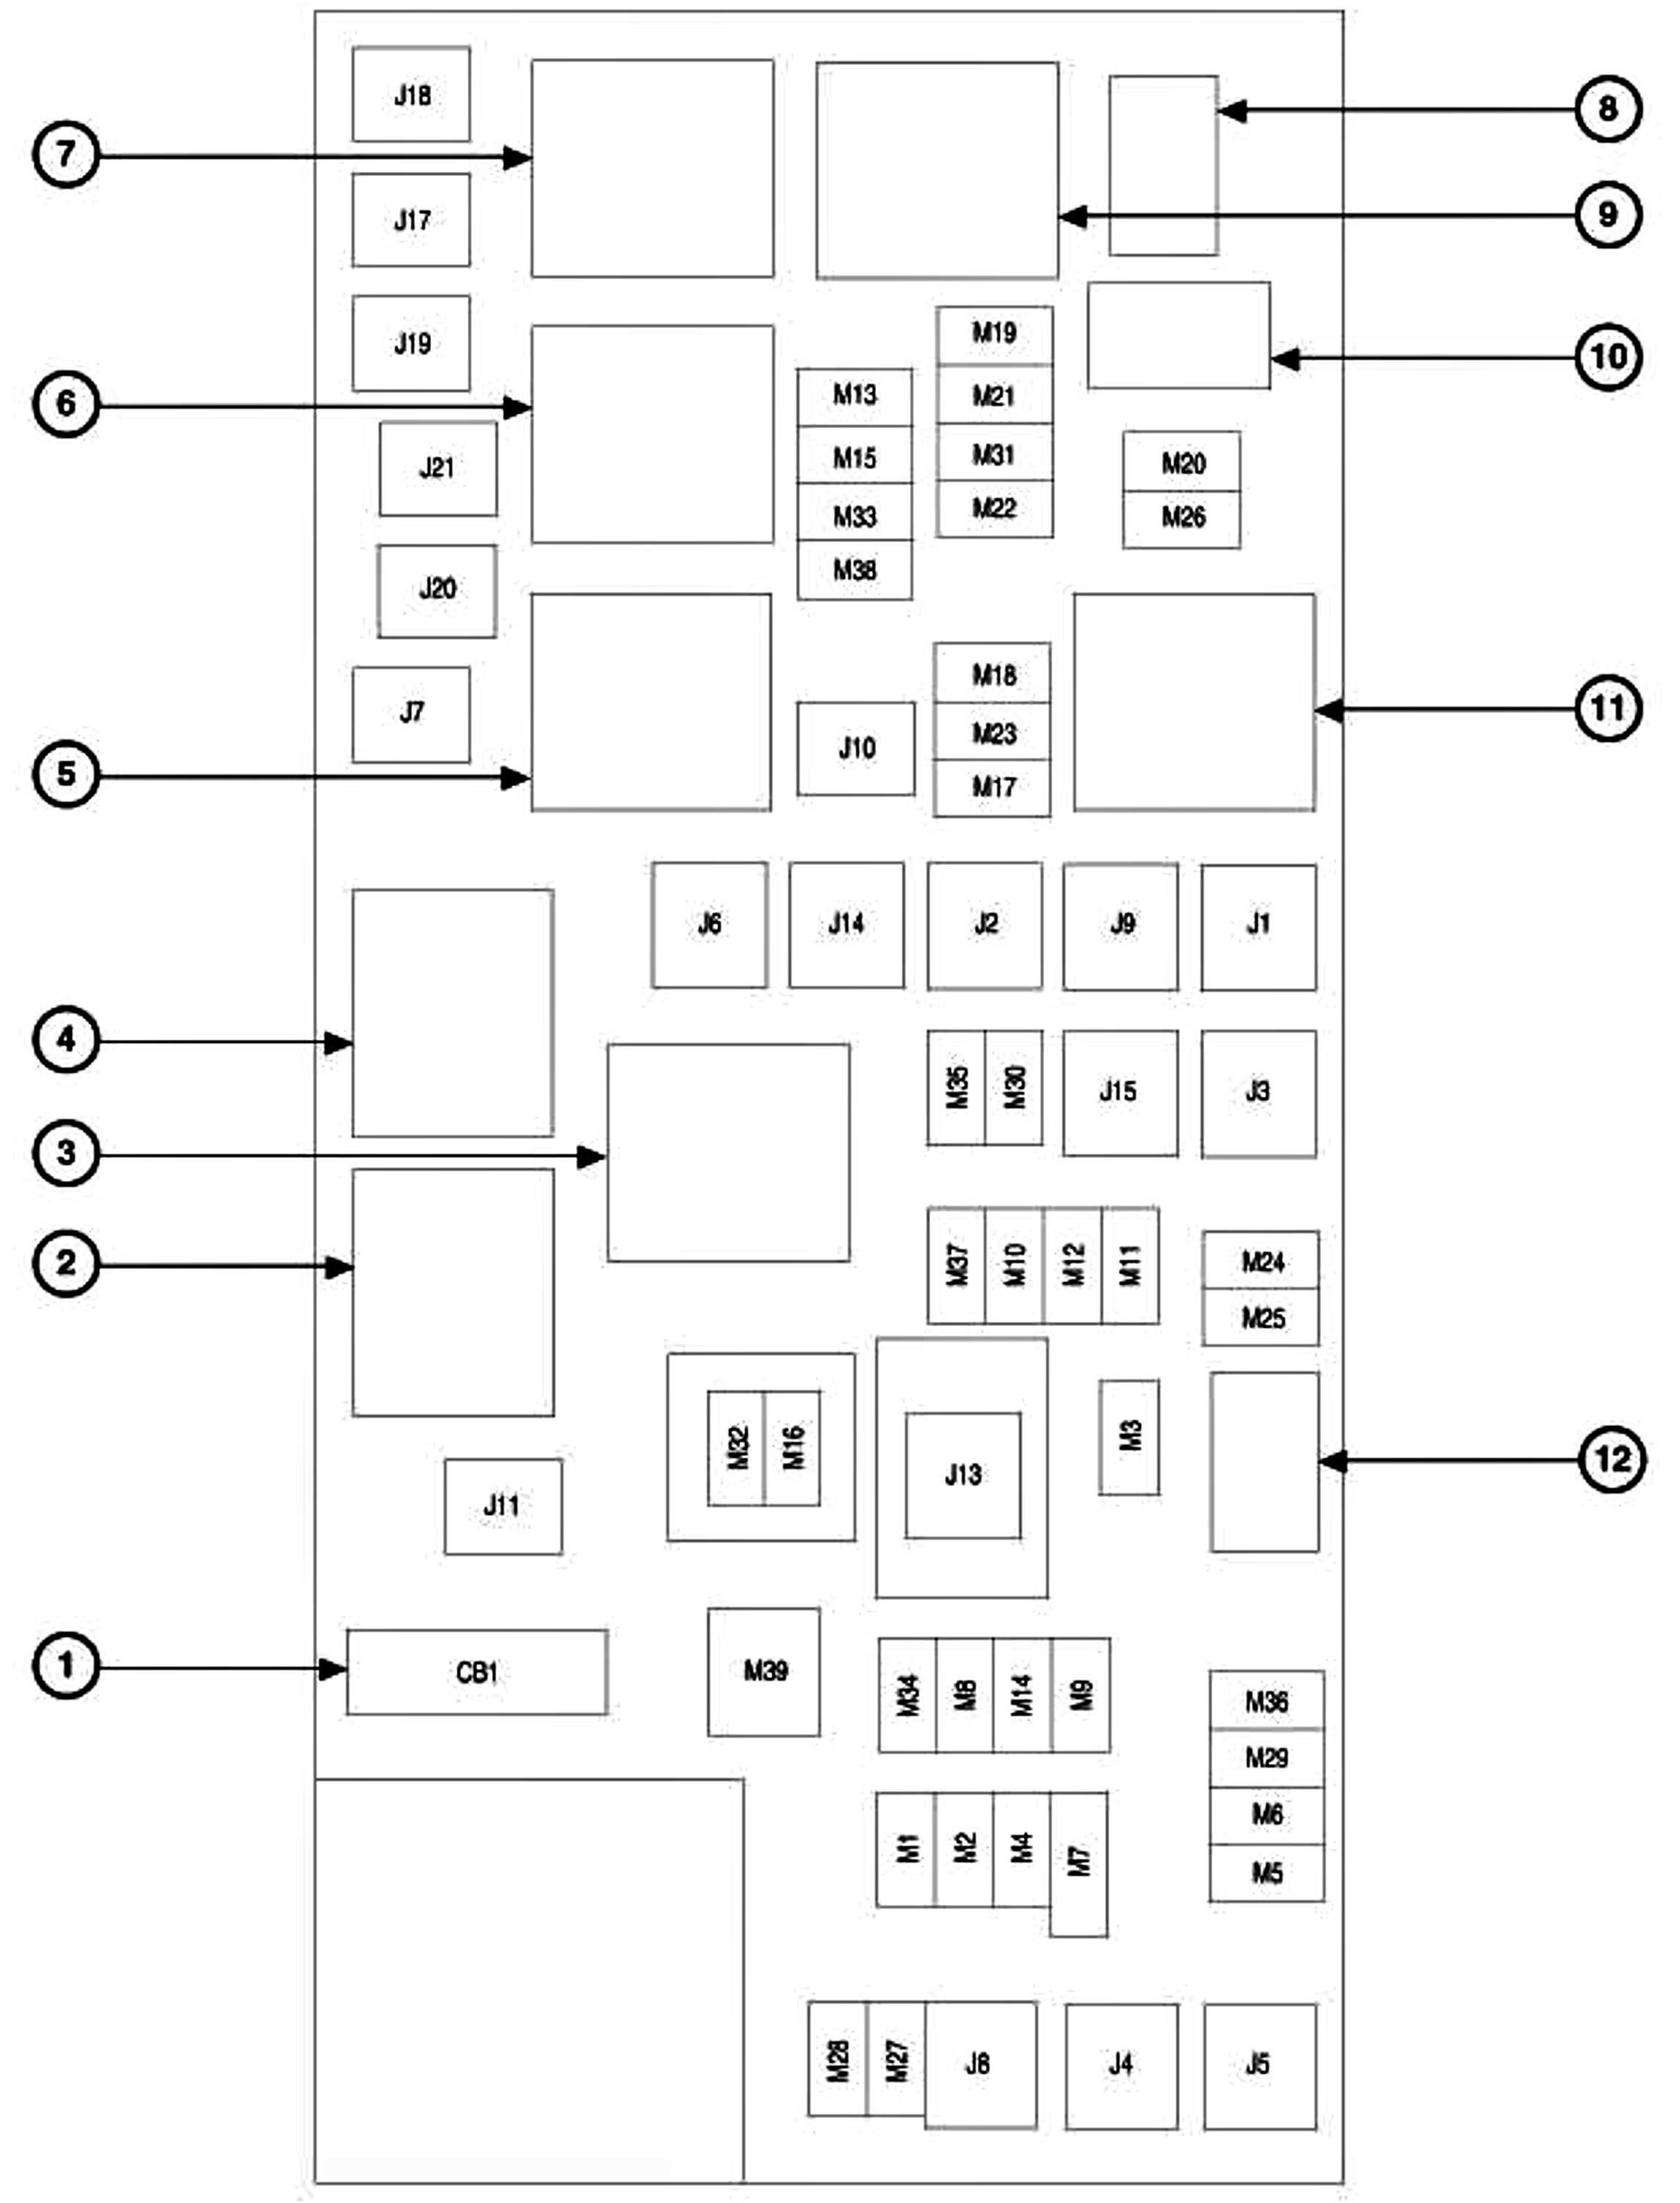 f65dad757704258fddc82721f010e9f2 2006 jeep commander fuse box diagram jpeg carimagescolay 2006 jeep wrangler fuse box diagram at nearapp.co